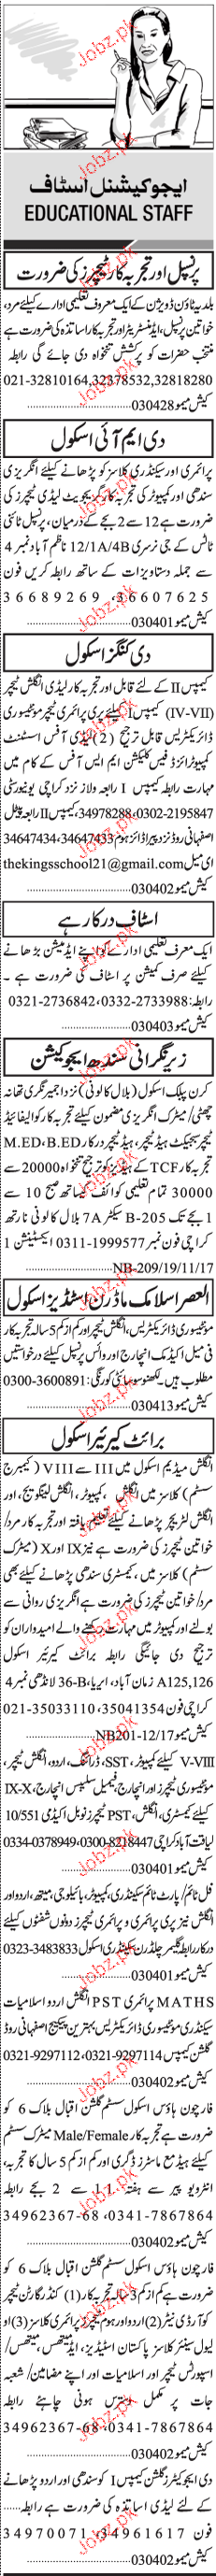 Sunday Jang Classified Educational Staff Job Opportunity